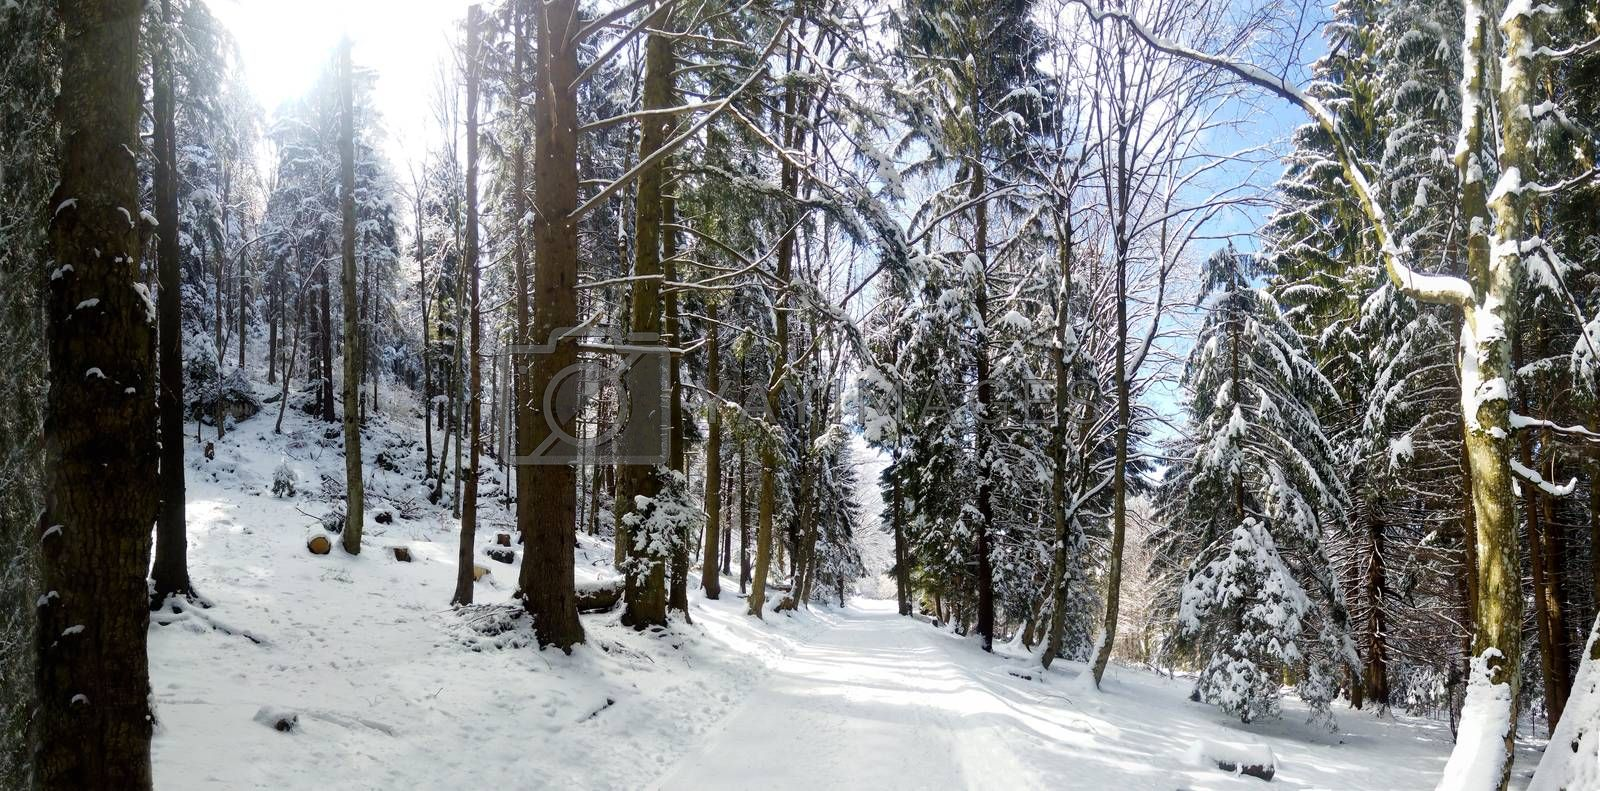 Panoramic view of a mountain forest road on winter